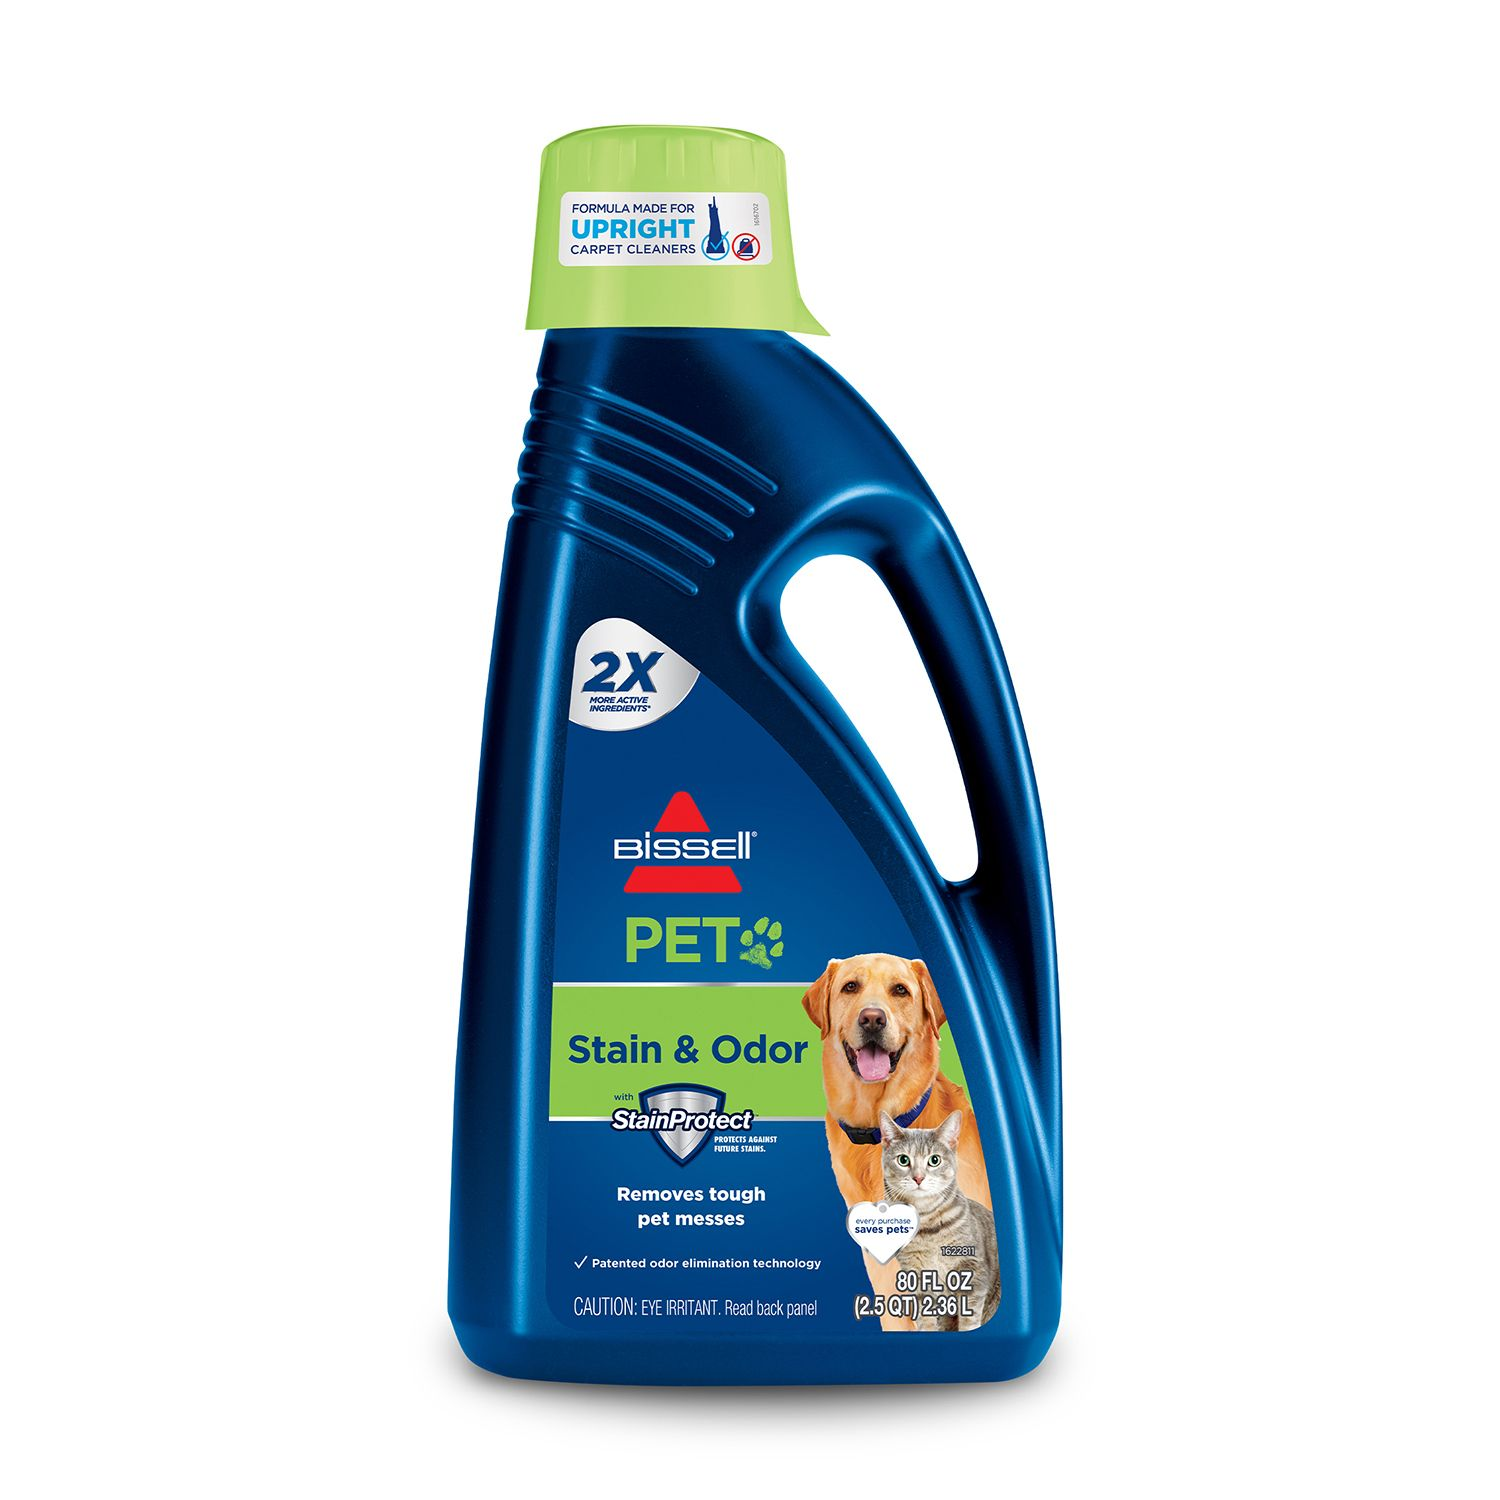 BISSELL DeepClean Pet Stain and Odor Remover